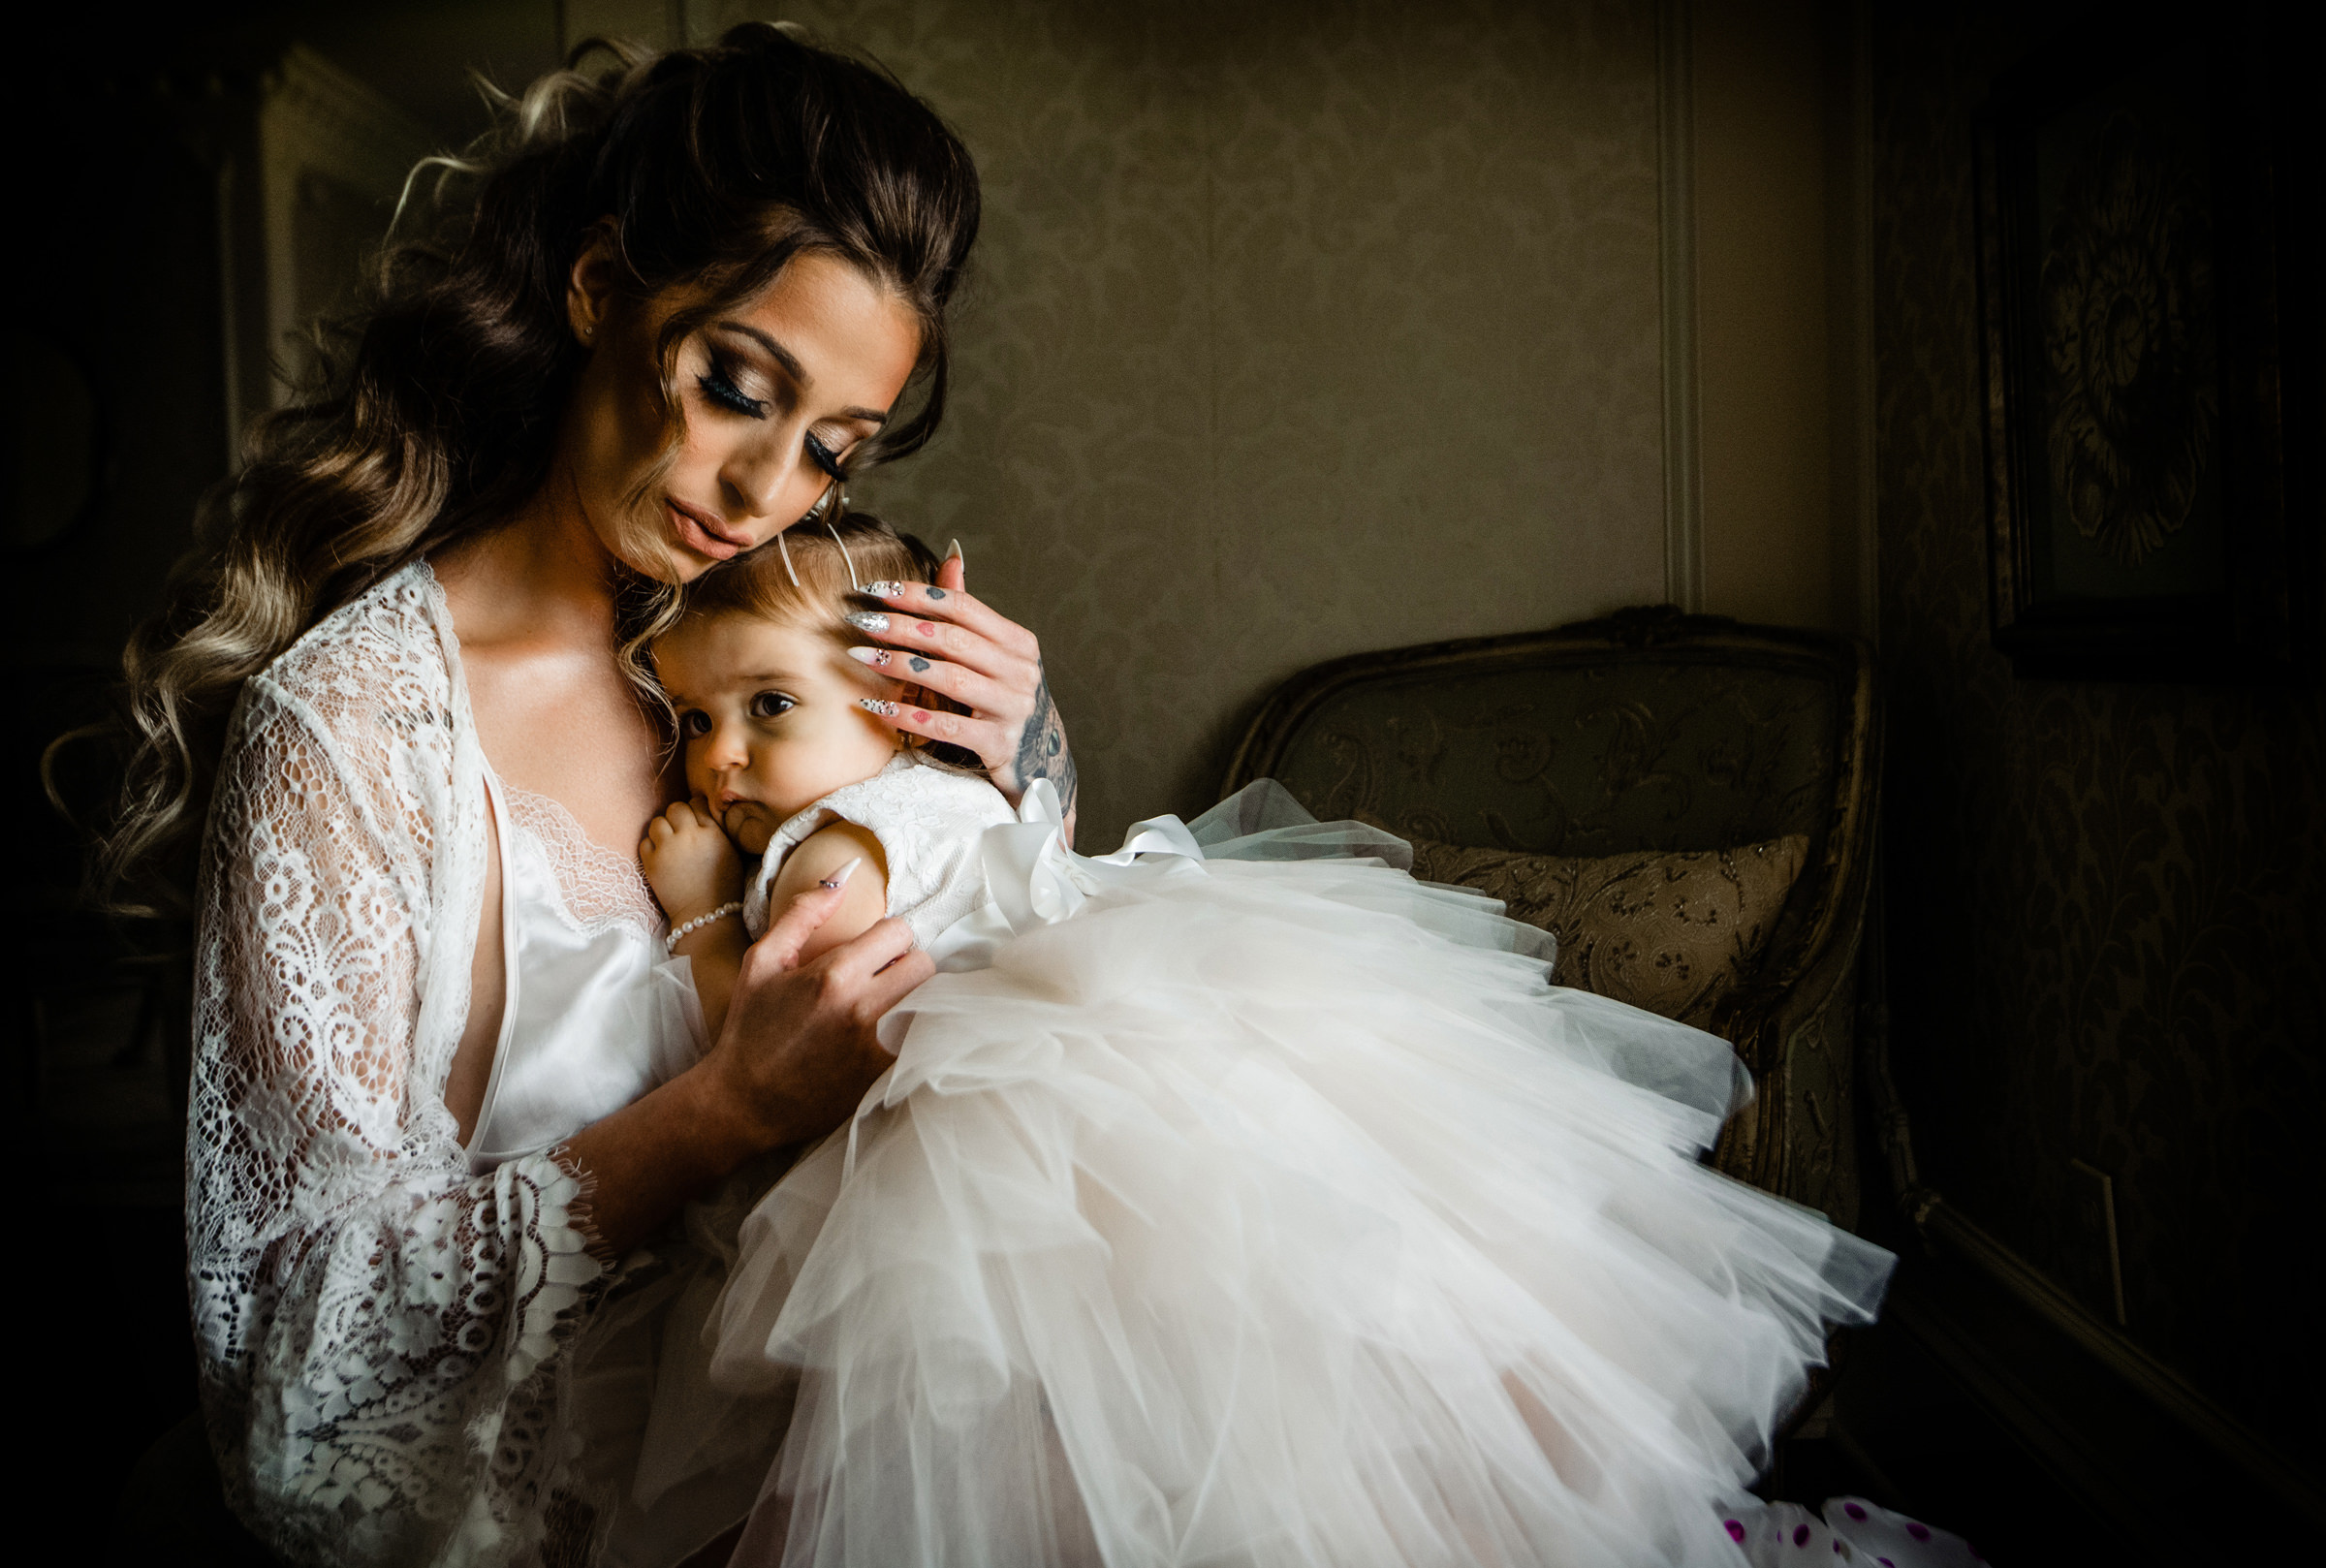 Bride caresses flower girl in white tulle dress  - photo by Jeff Tisman Photography, New York